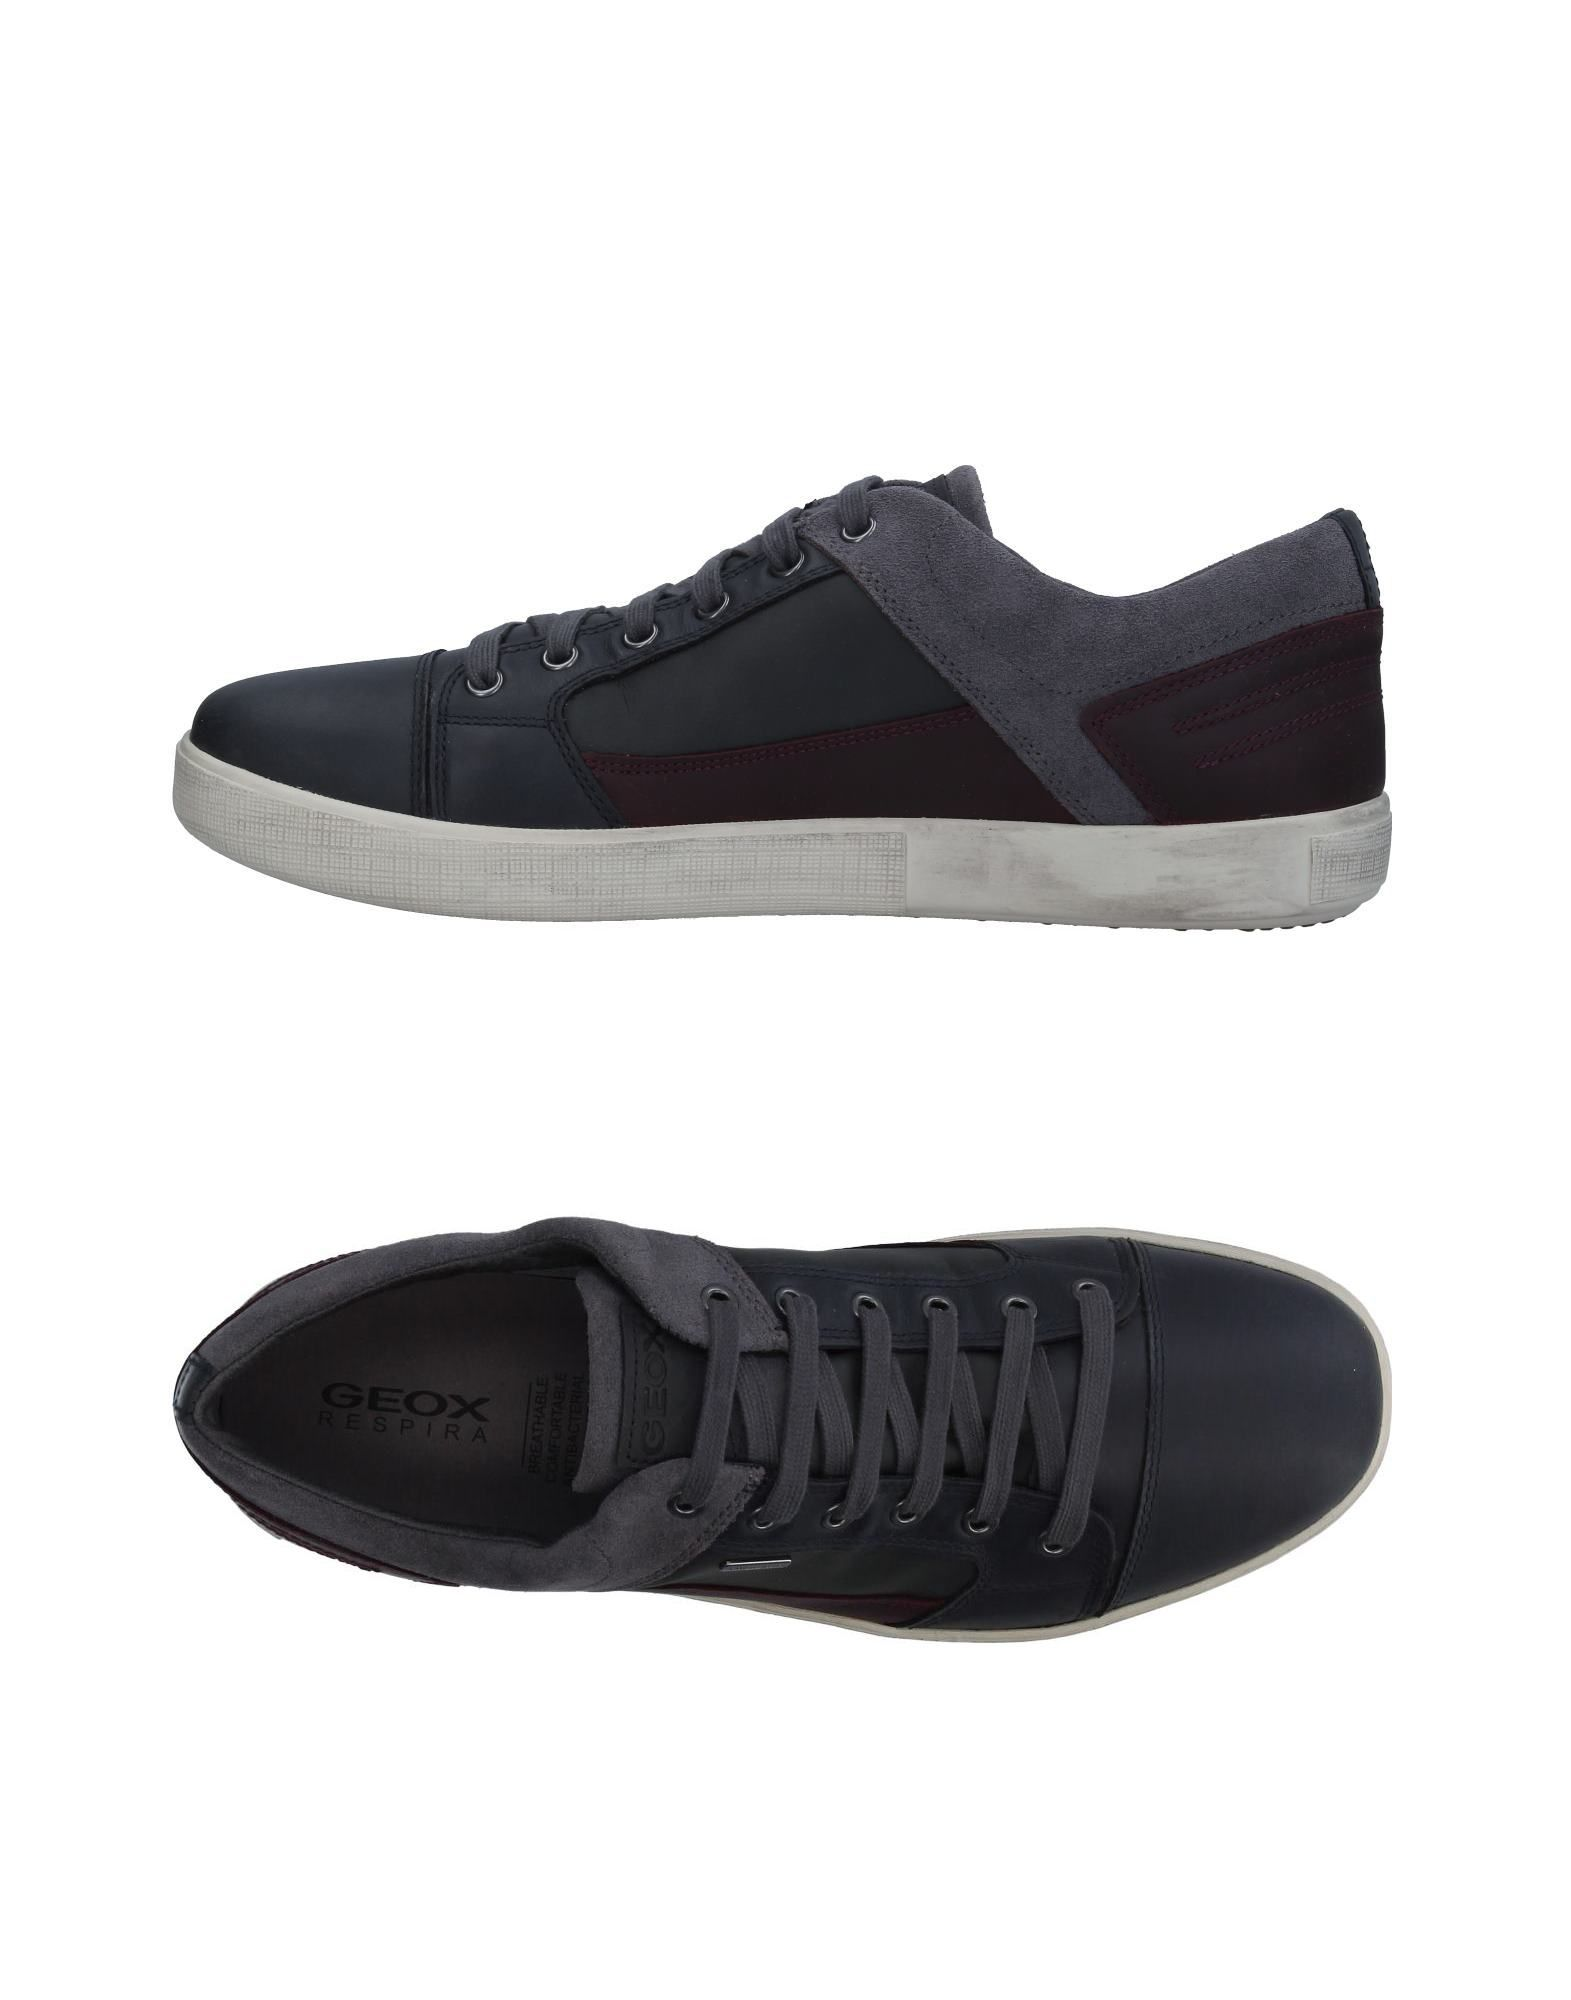 Sneakers Geox Homme - Sneakers Geox  Anthracite Spécial temps limité